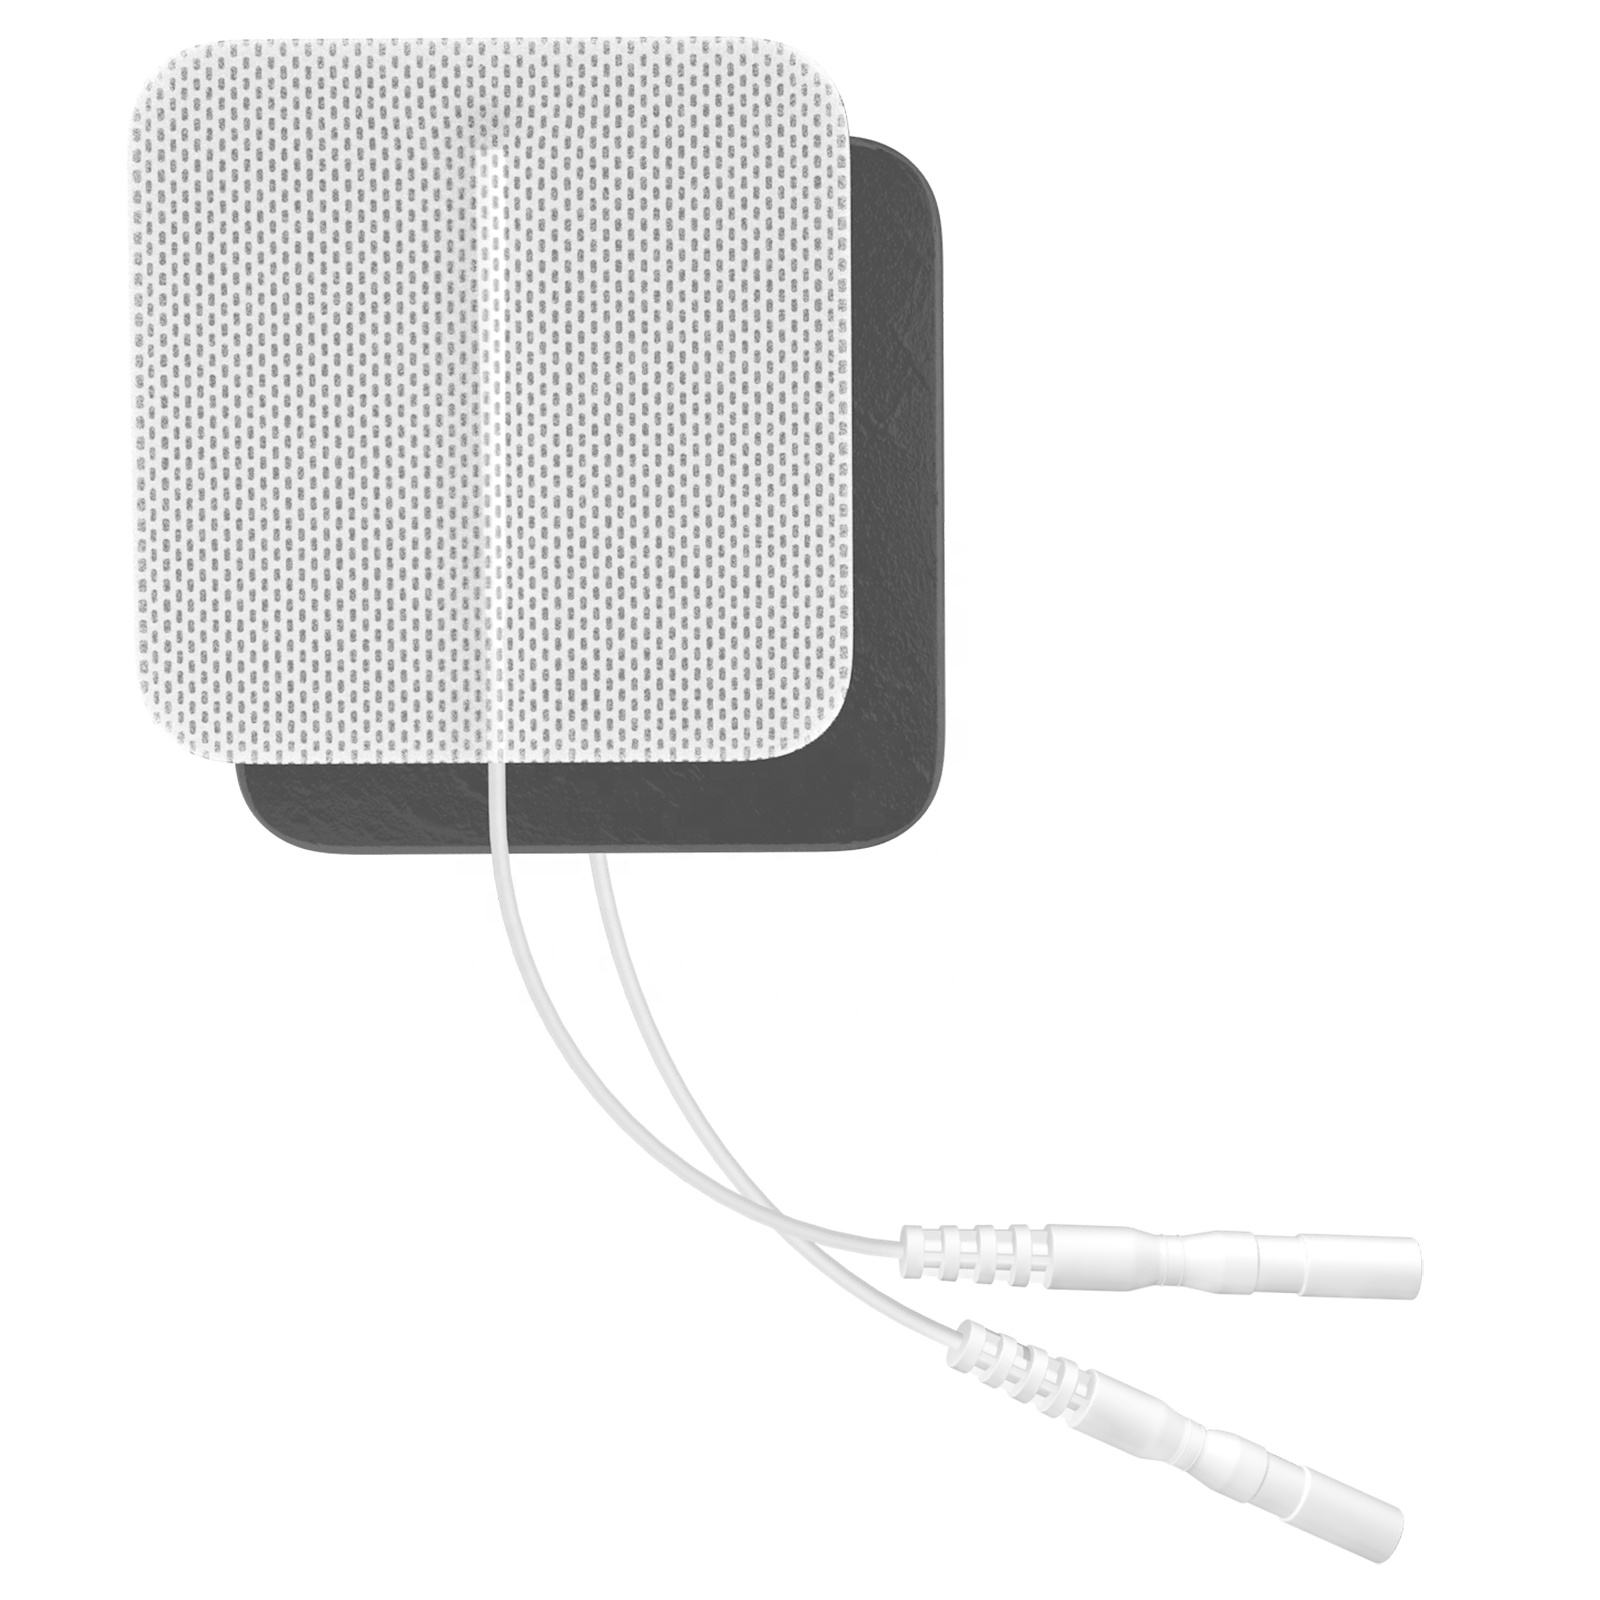 Physical Therapy 5x5 cm Adhesive Electrode Pads